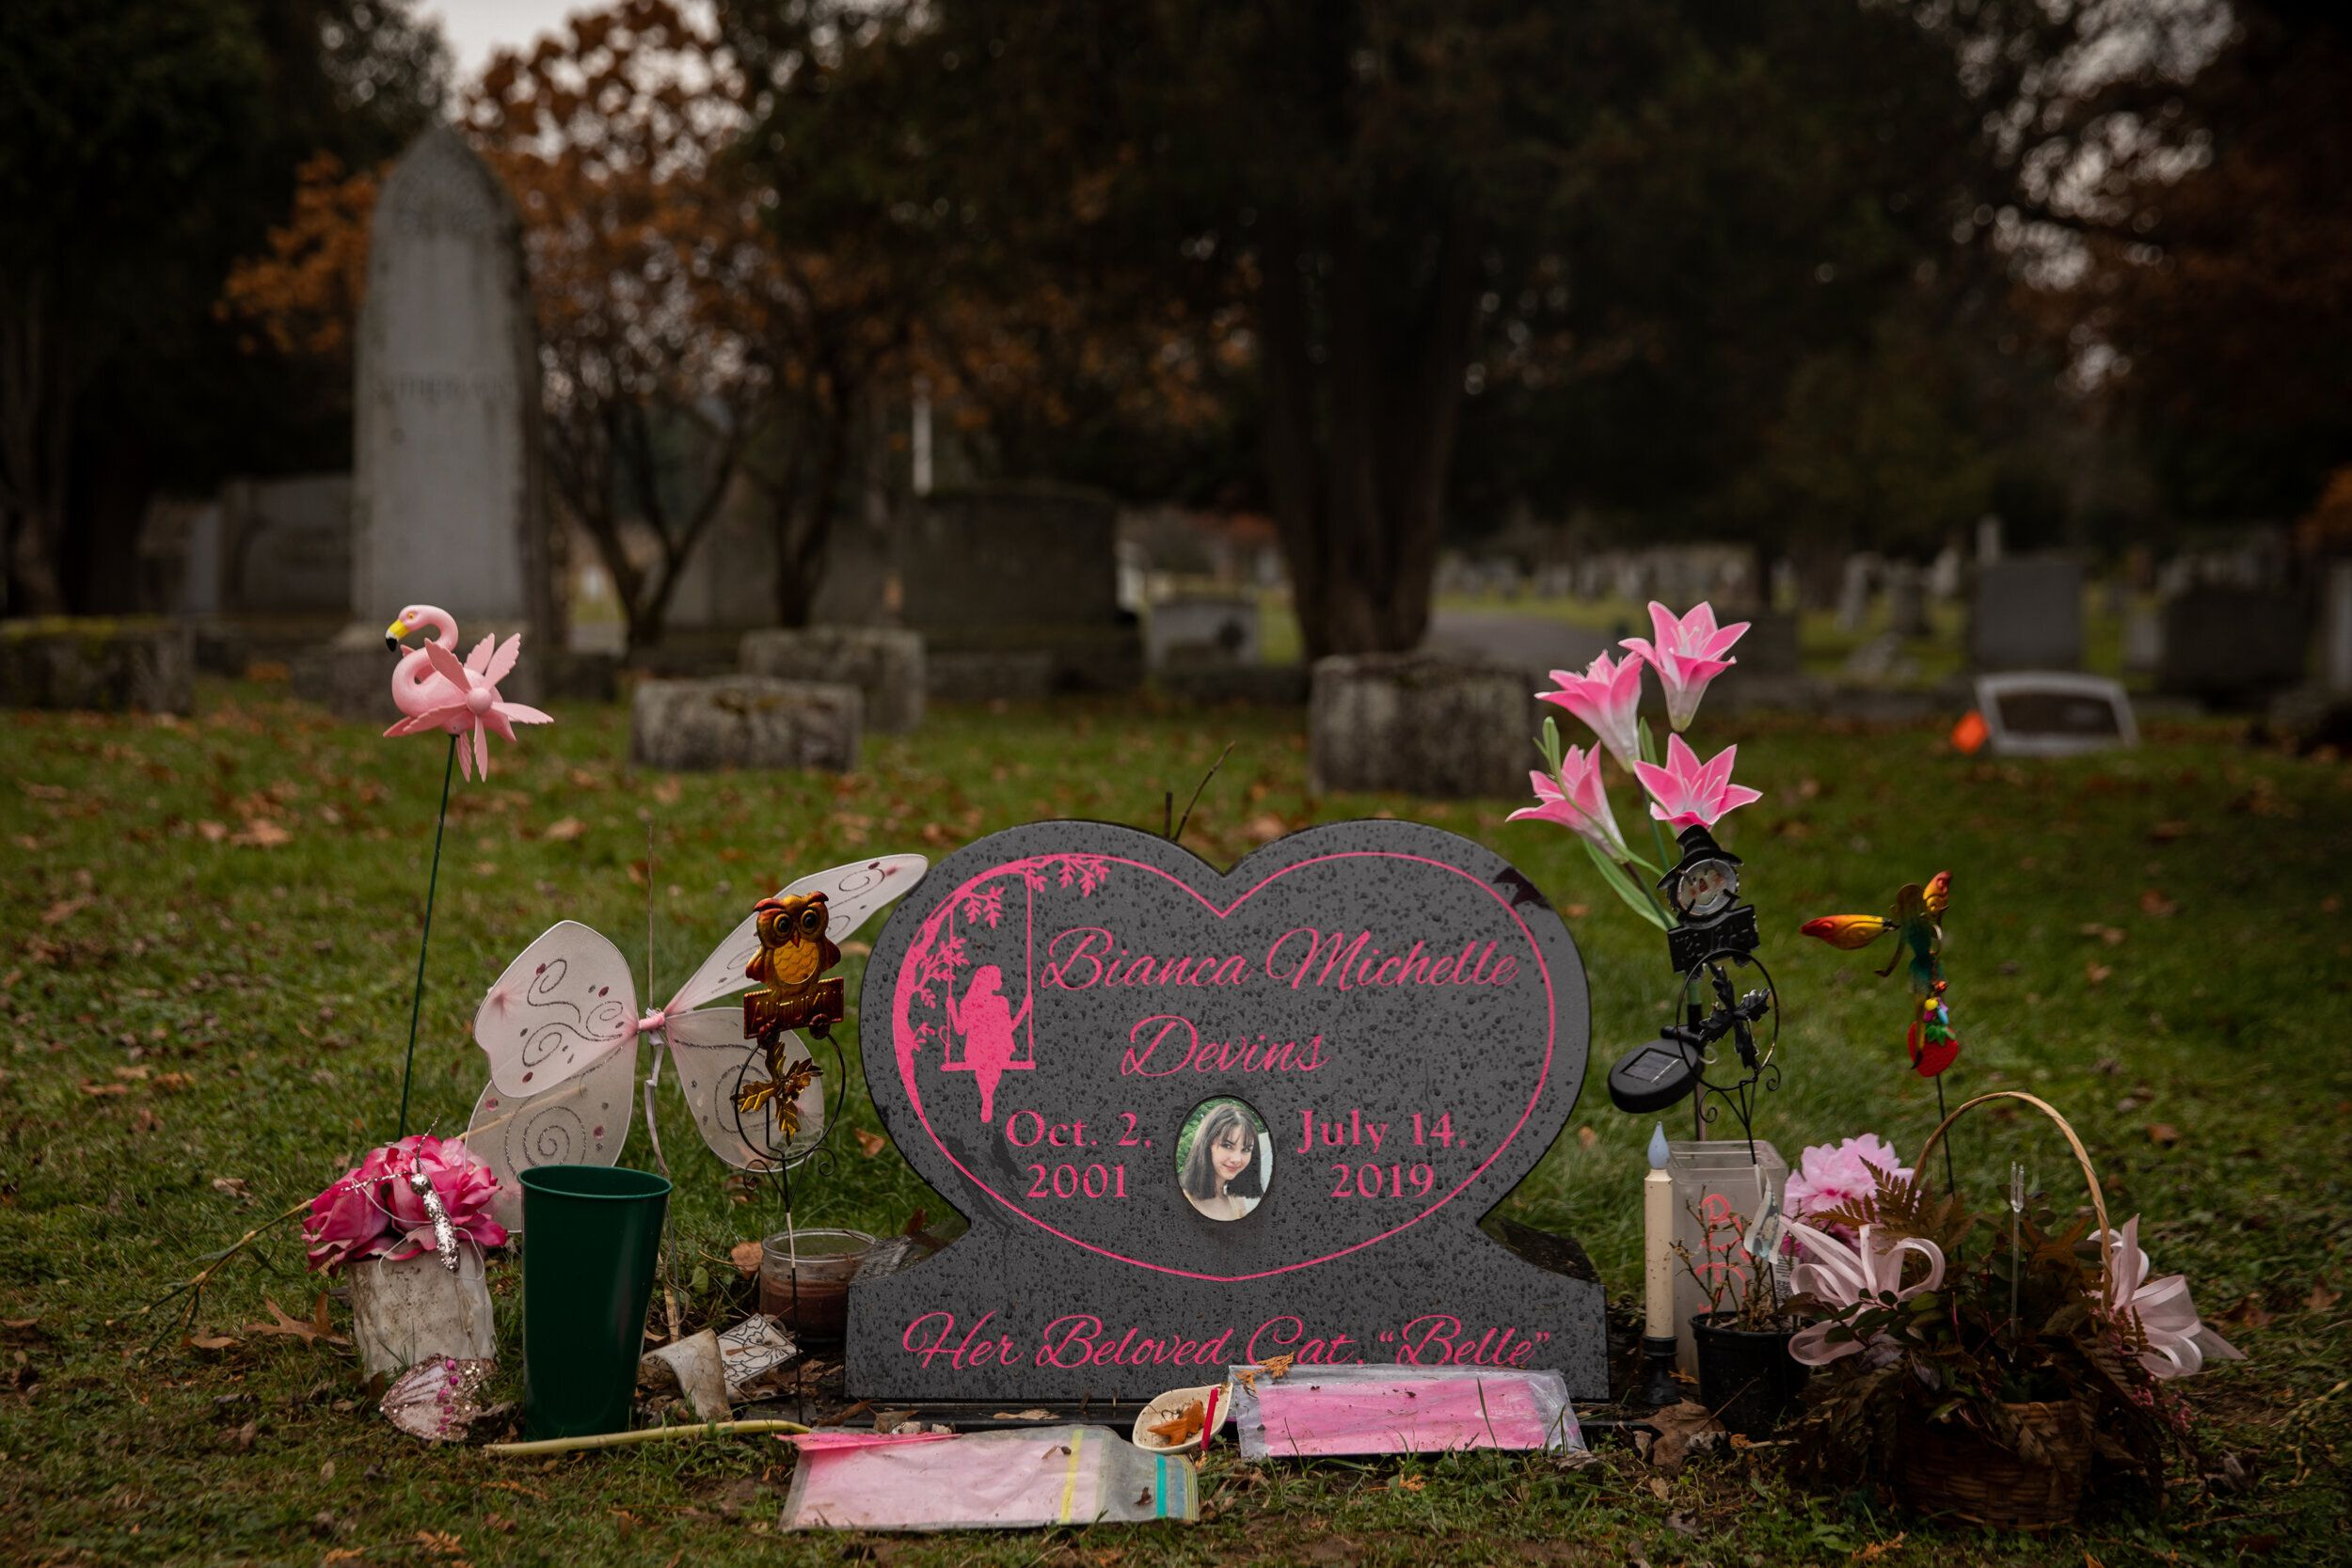 The headstone for Bianca Devins is covered in flowers and tokens from friends and family.